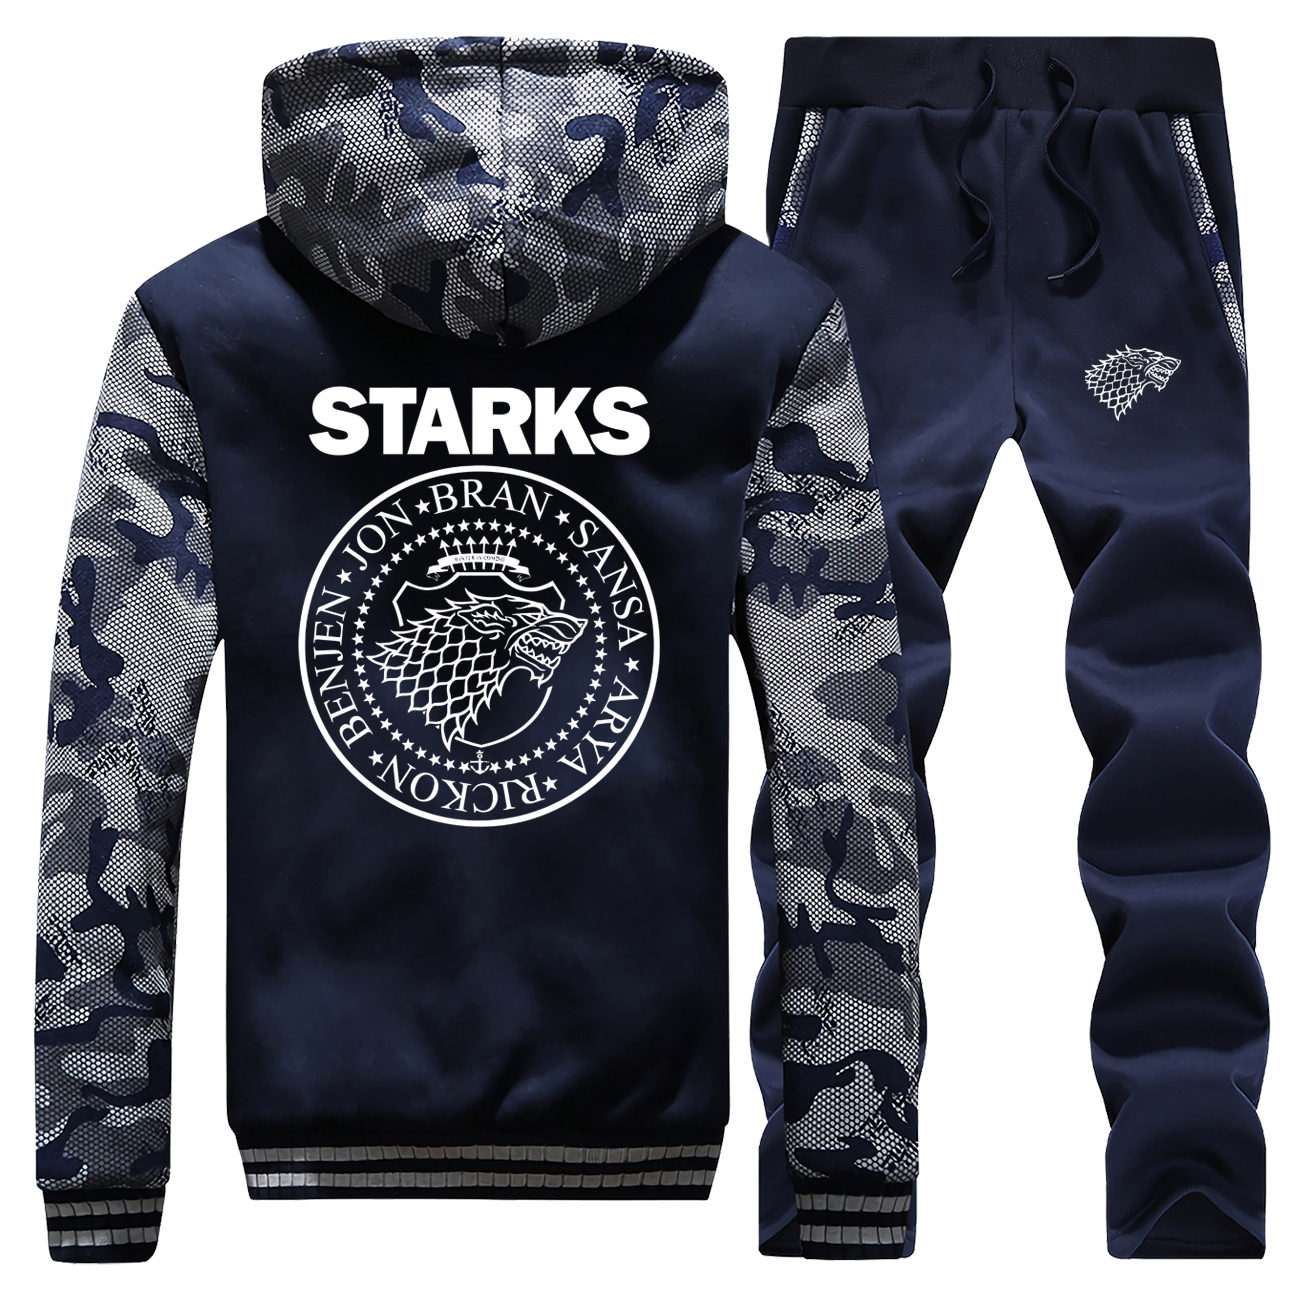 Winter Thick Men Game Of Thrones Sports Suit Tracksuit Hooded Sportswear Zipper Warm Jacket + Pants 2Pcs Casual Men Set